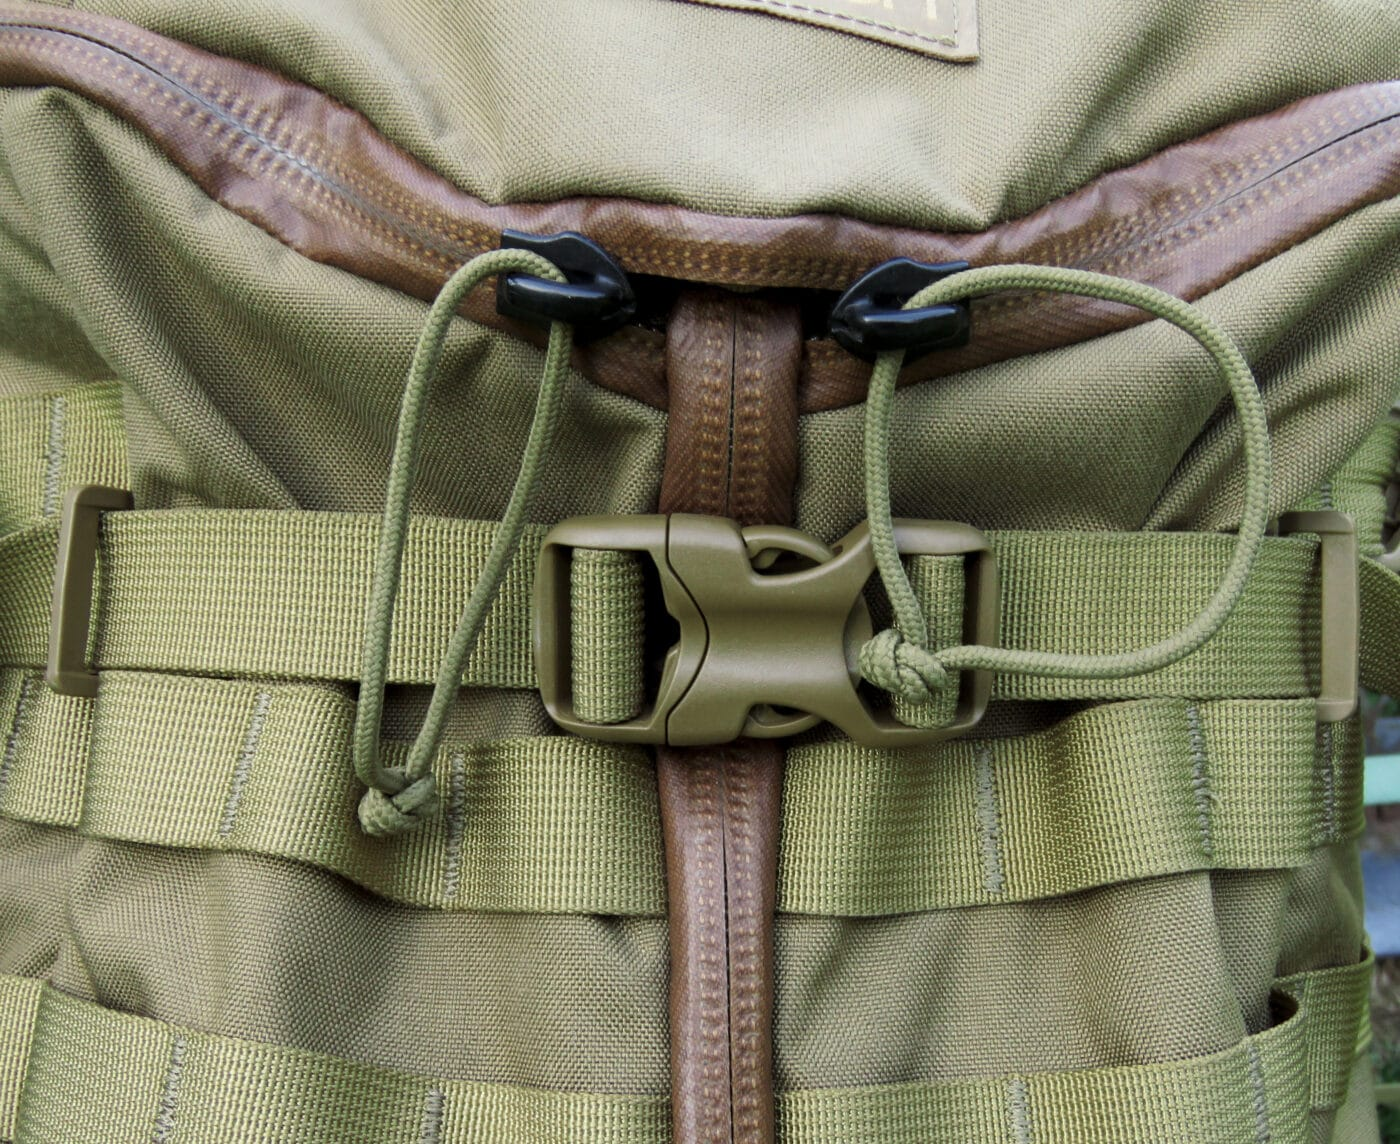 Sealed zippers and pulls on Mystery Ranch backpack